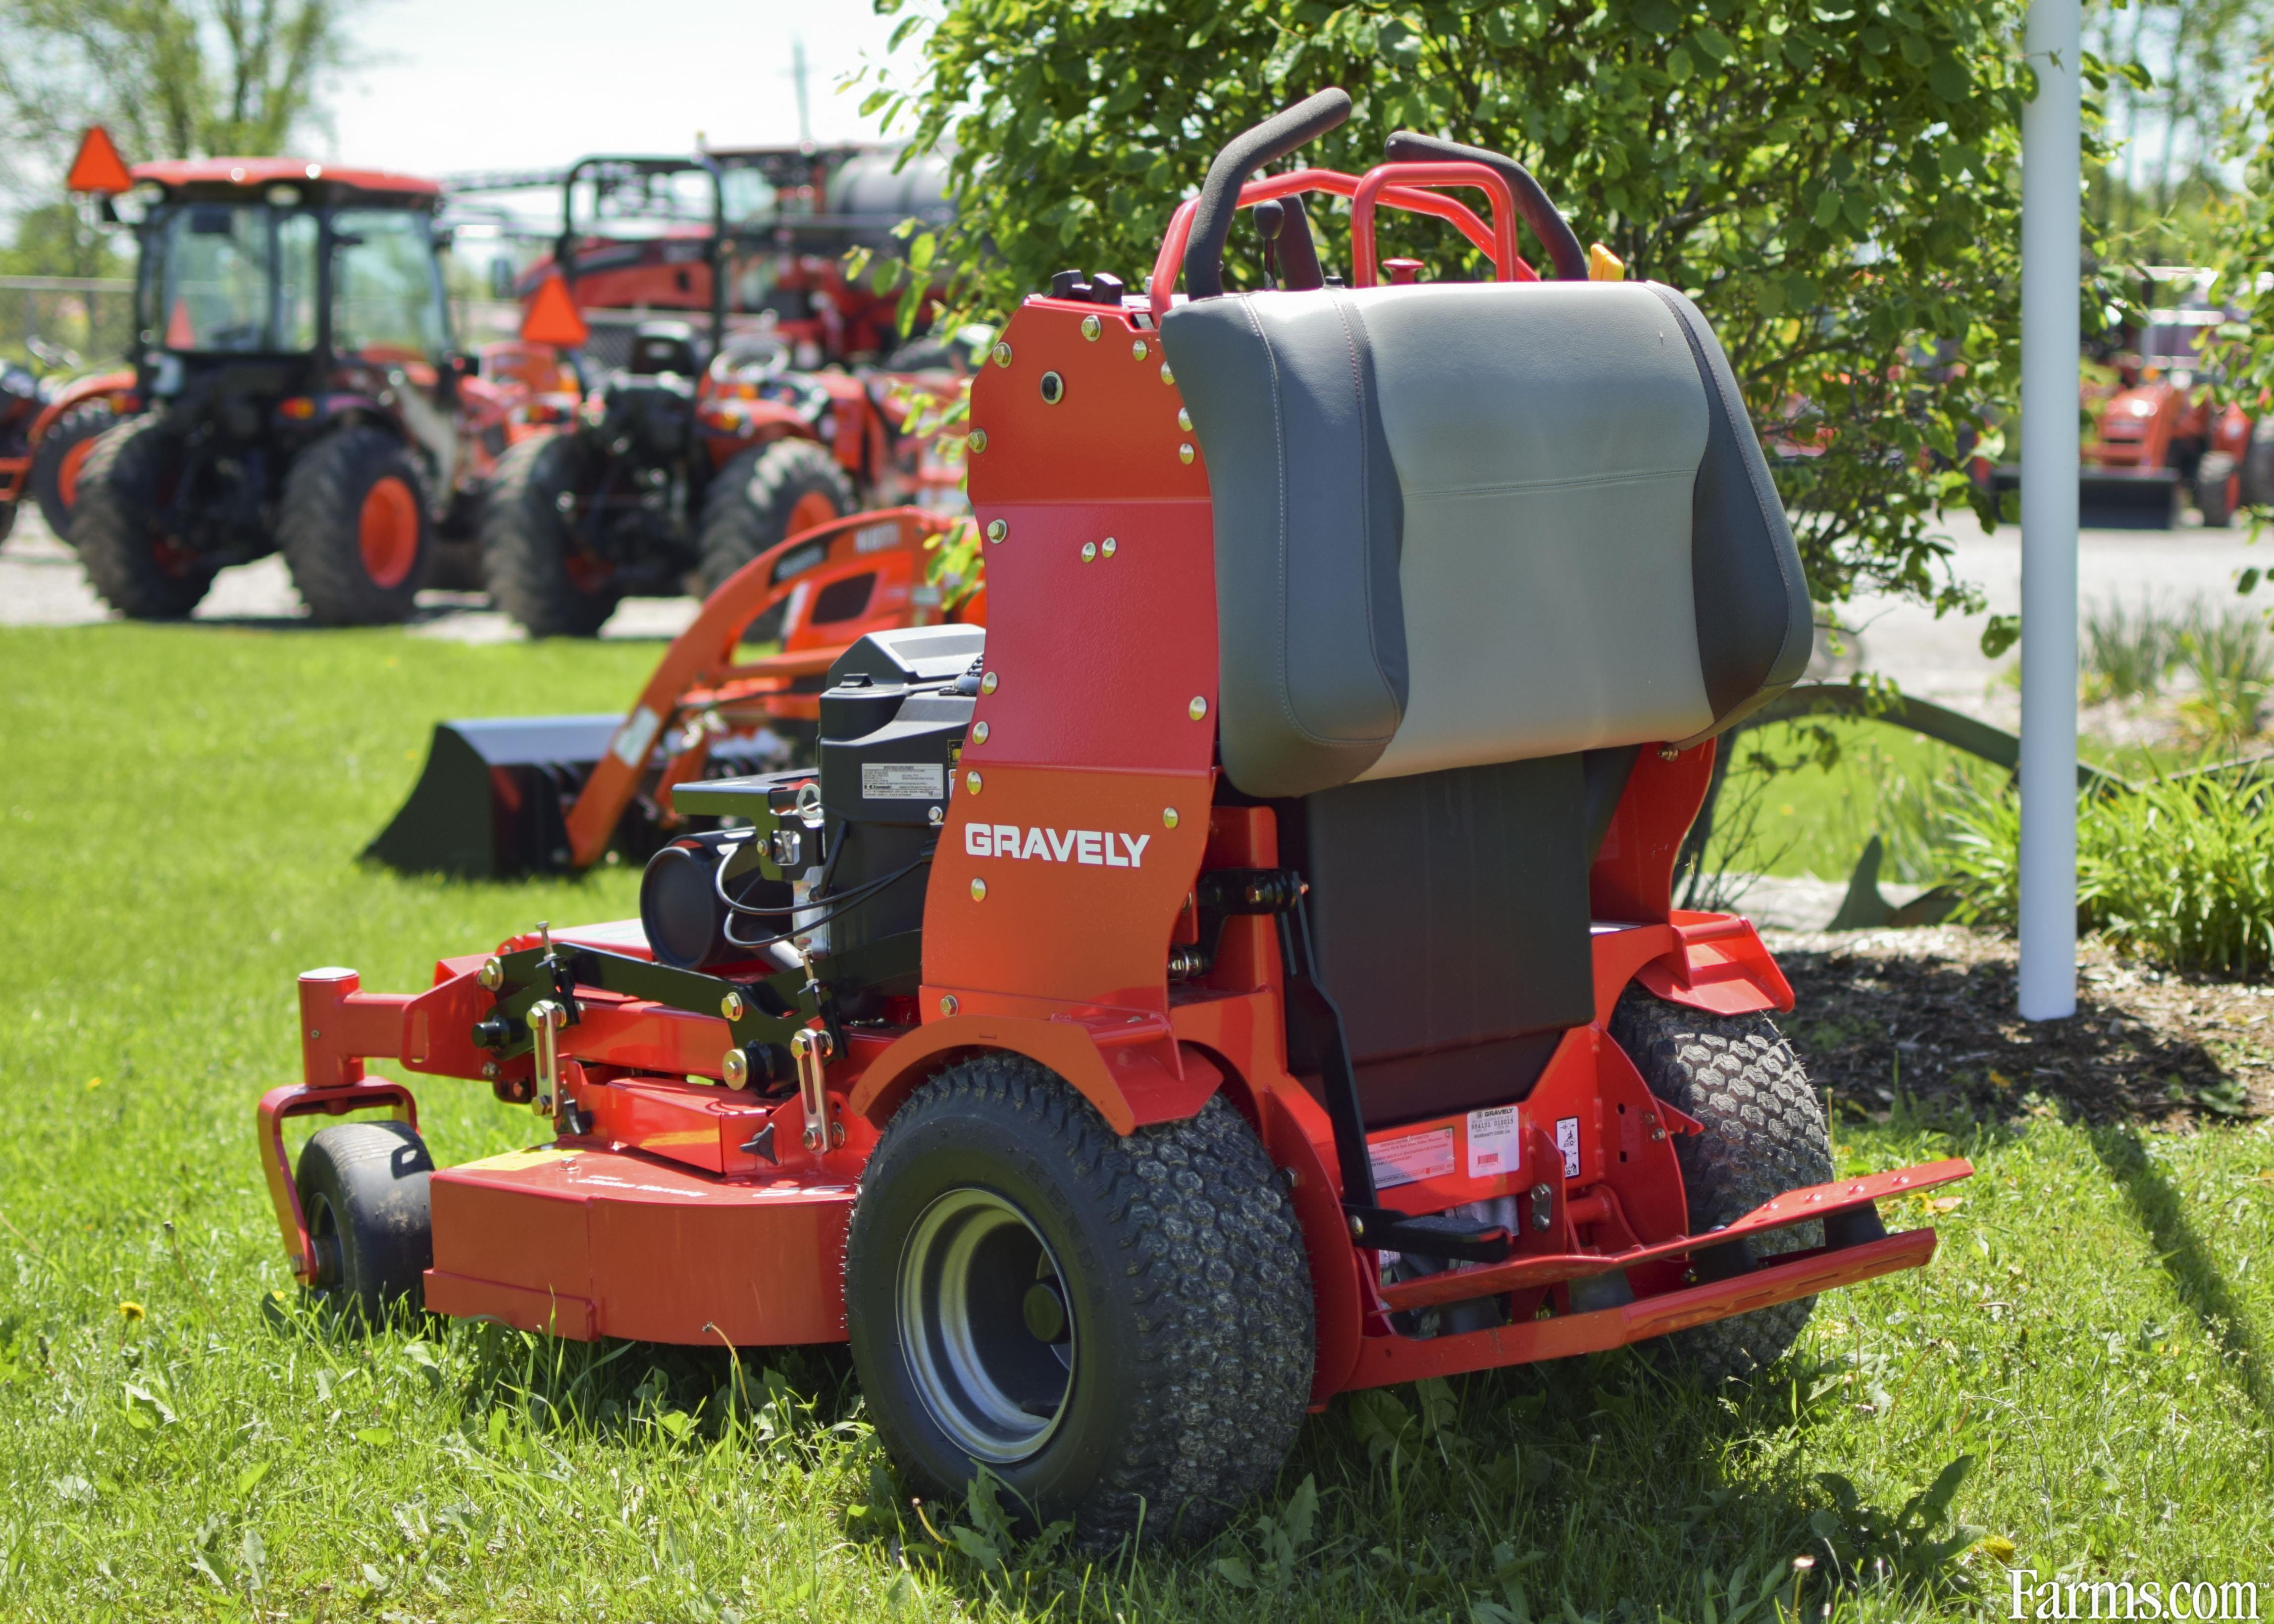 Gravely 2017 Prostance Riding Lawn Mowers For Sale